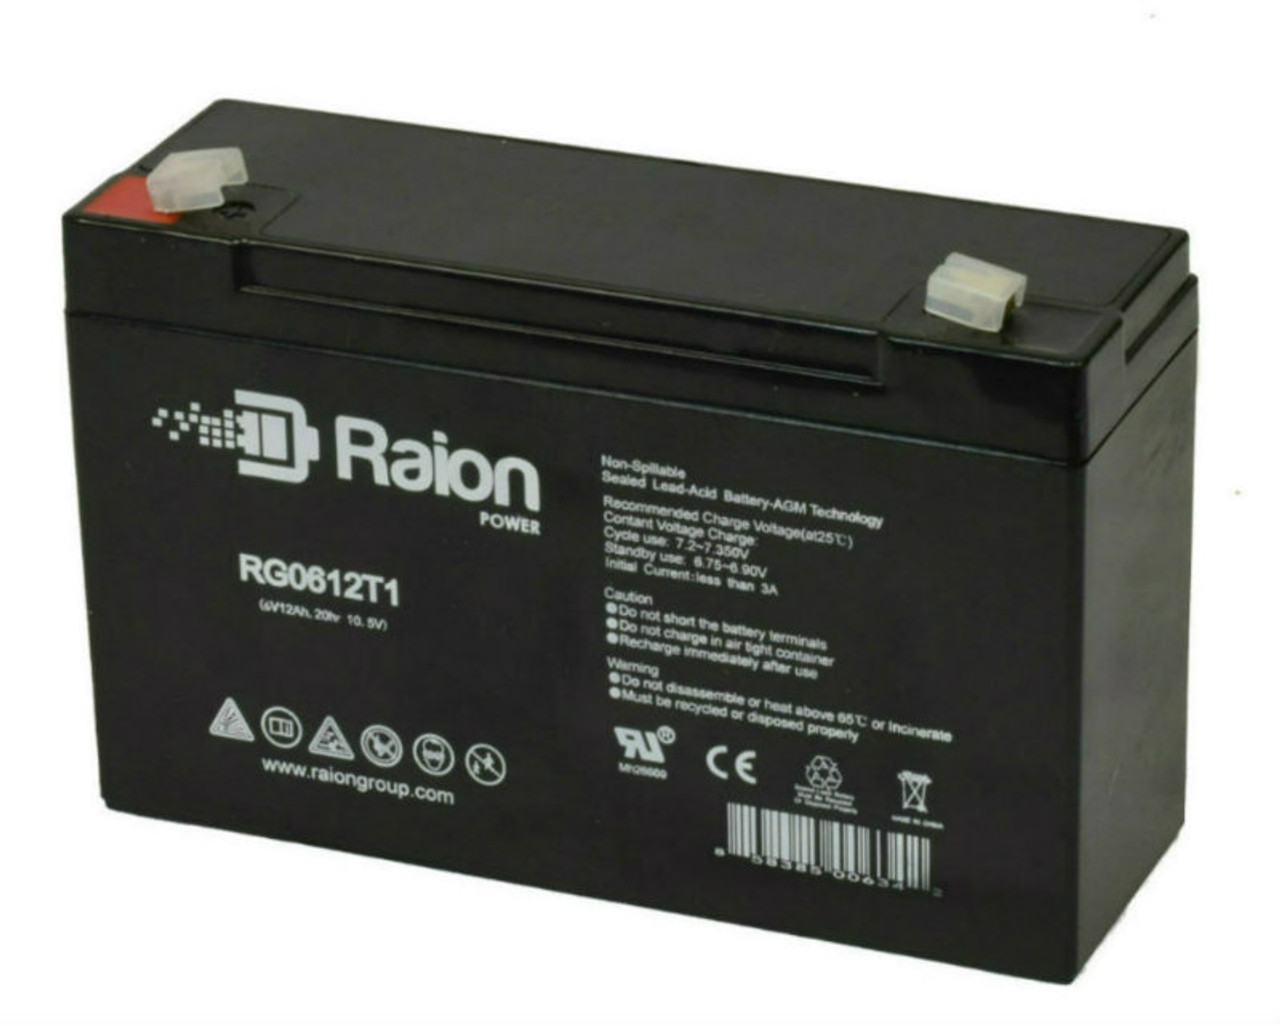 Raion Power RG06120T1 Replacement Battery Pack for Teledyne 2SE6S16 emergency light